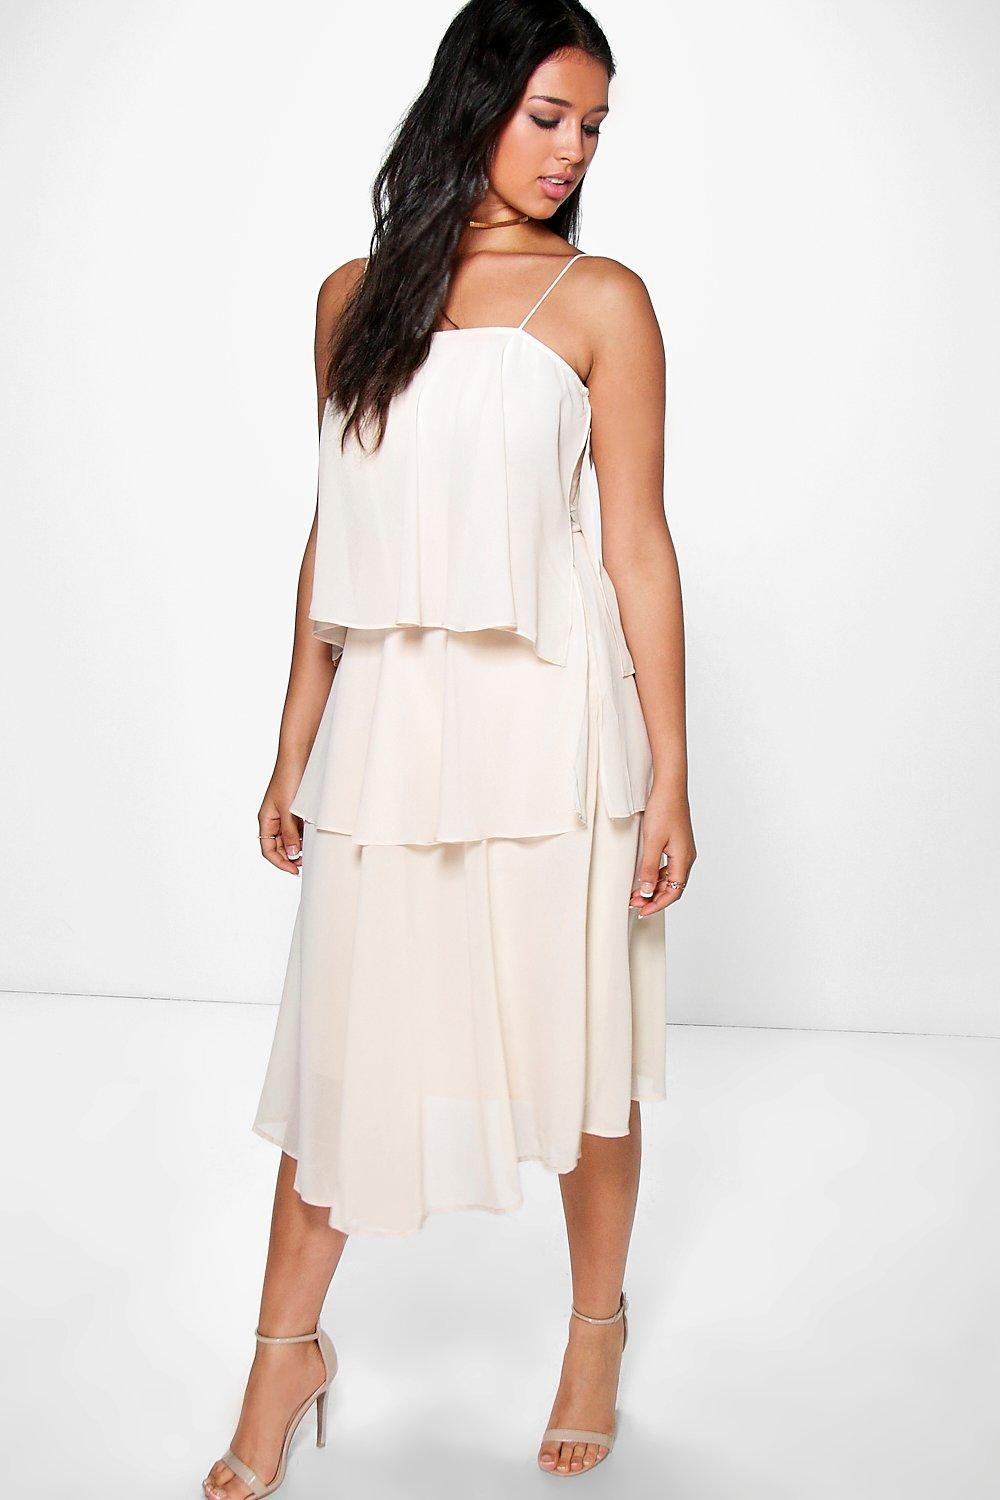 Ruffle Chiffon Strappy Midi Dress Cream - style: shift; length: calf length; sleeve style: spaghetti straps; pattern: plain; bust detail: ruching/gathering/draping/layers/pintuck pleats at bust; predominant colour: ivory/cream; occasions: evening; fit: body skimming; fibres: polyester/polyamide - 100%; sleeve length: sleeveless; texture group: sheer fabrics/chiffon/organza etc.; neckline: medium square neck; pattern type: fabric; season: s/s 2016; wardrobe: event